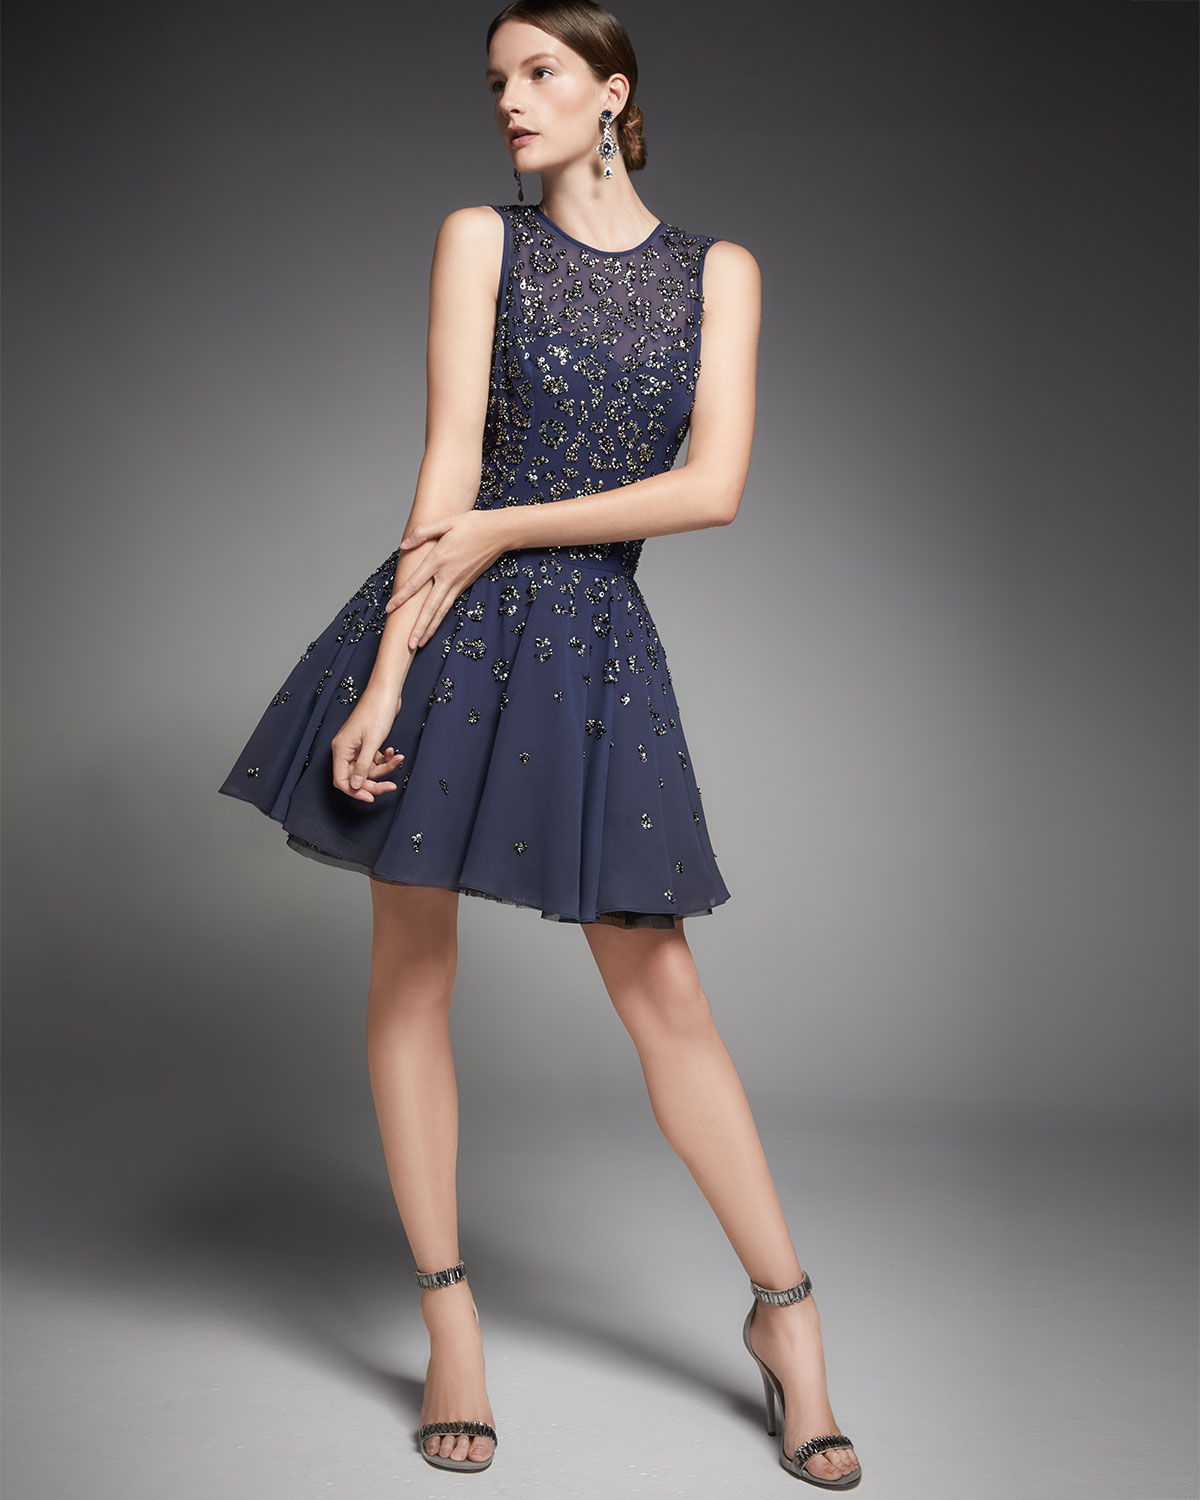 Lyst - Rebecca Taylor Beaded Fit-and-flare Cocktail Dress in Blue